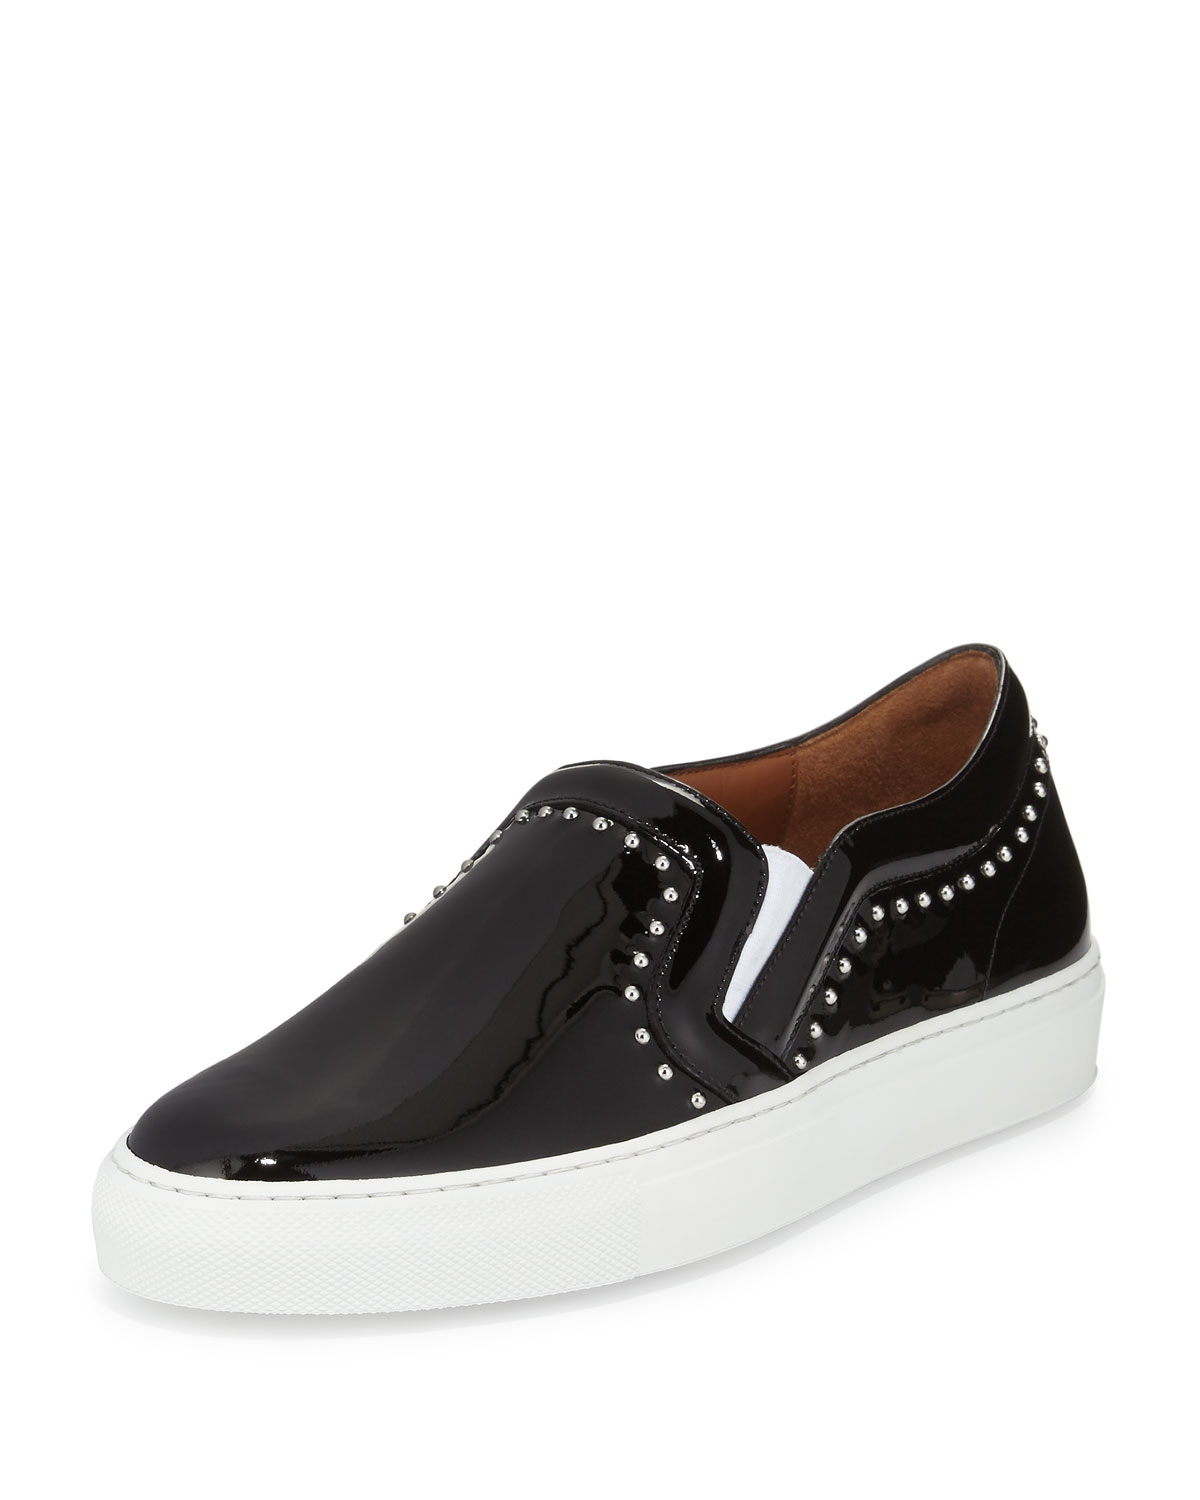 imitation christian louboutin shoes - Givenchy Studded Patent Leather Skate Shoe in Black | Lyst